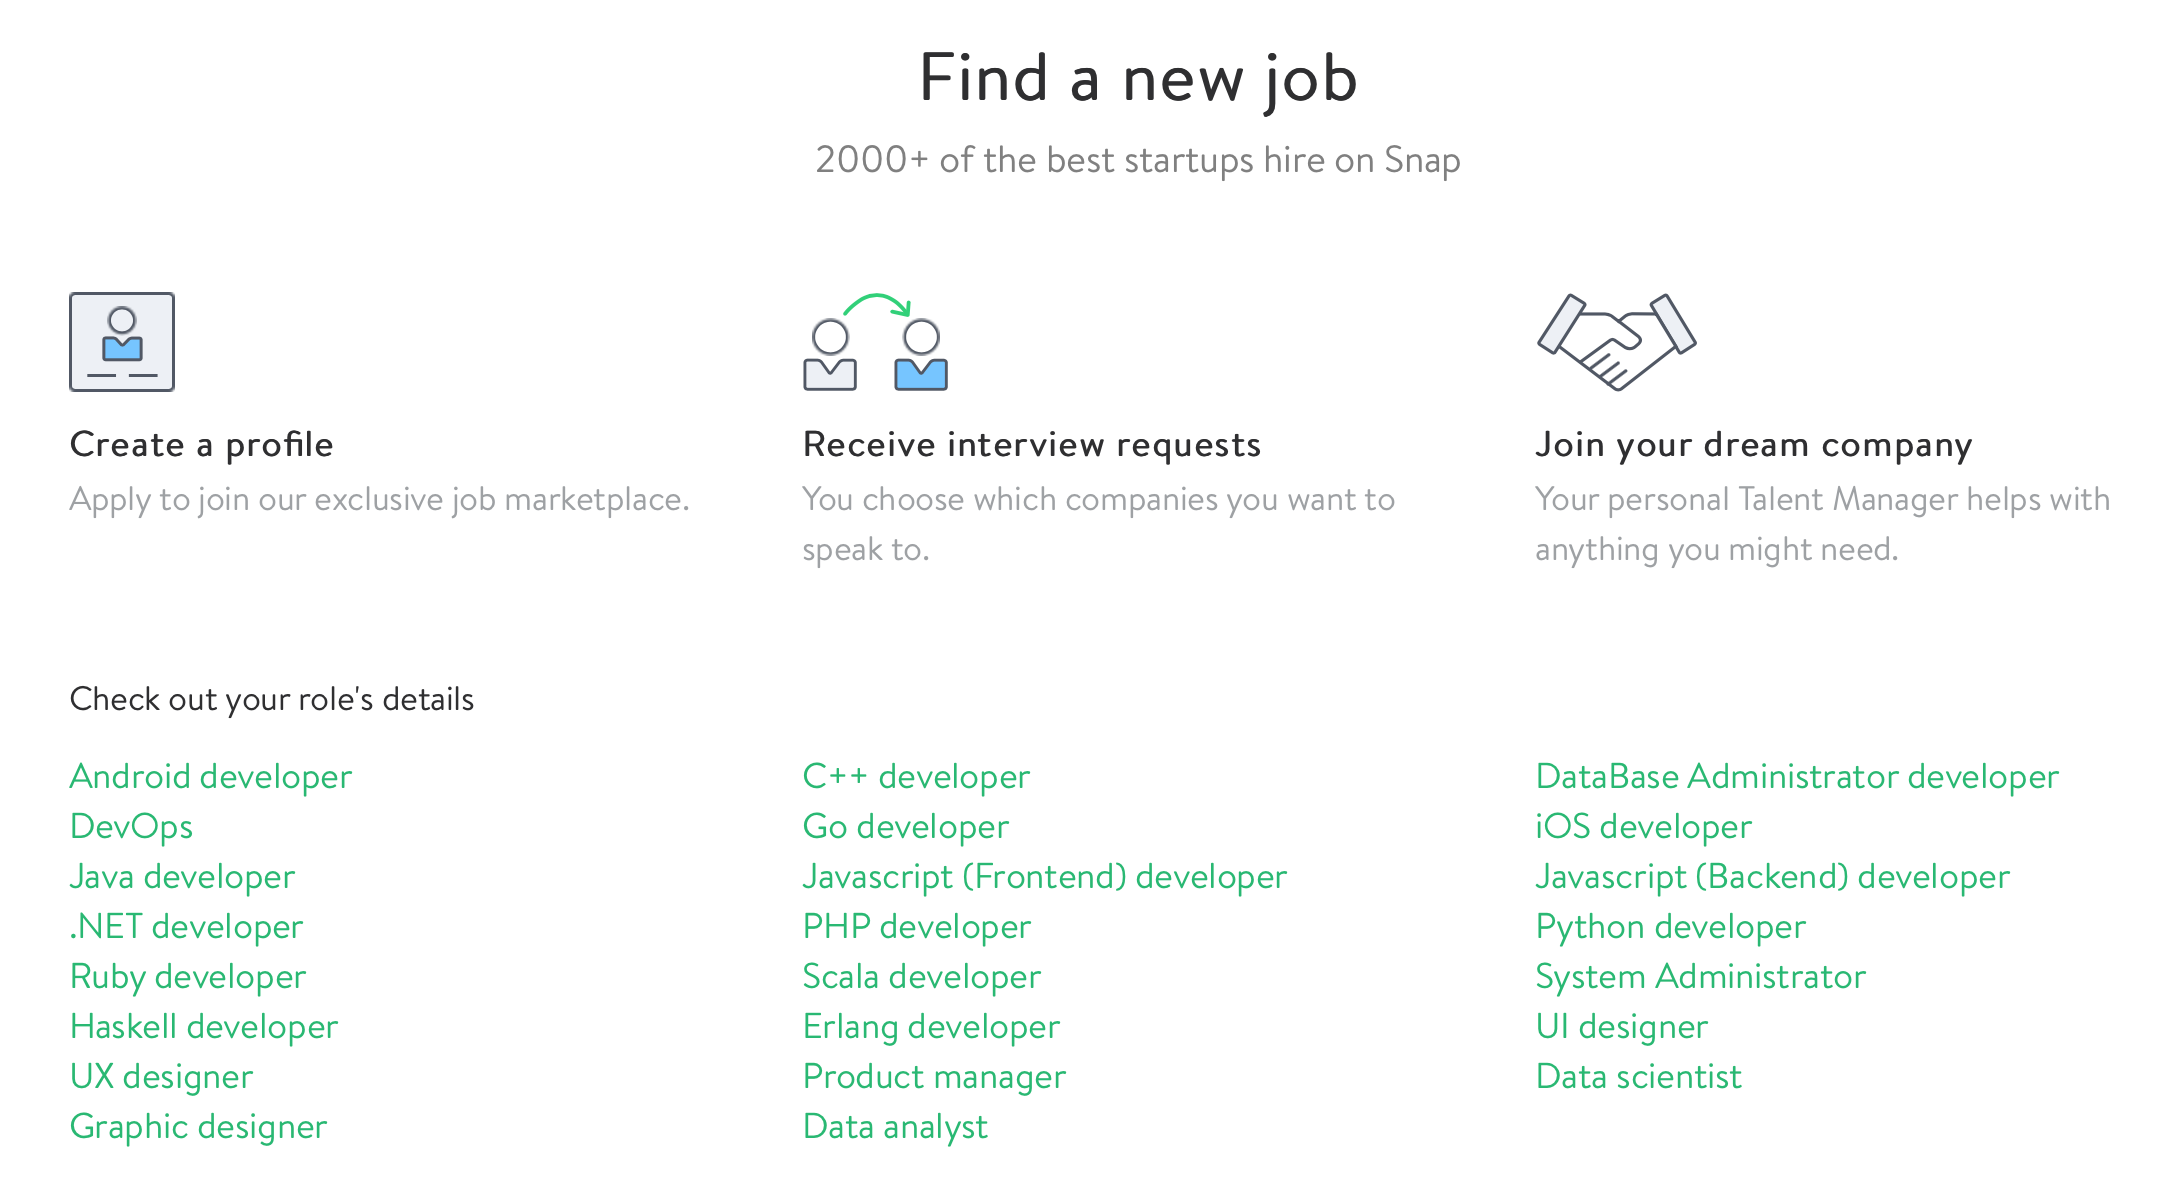 Find a New Job – 2000+ of the best startups hire on Snap